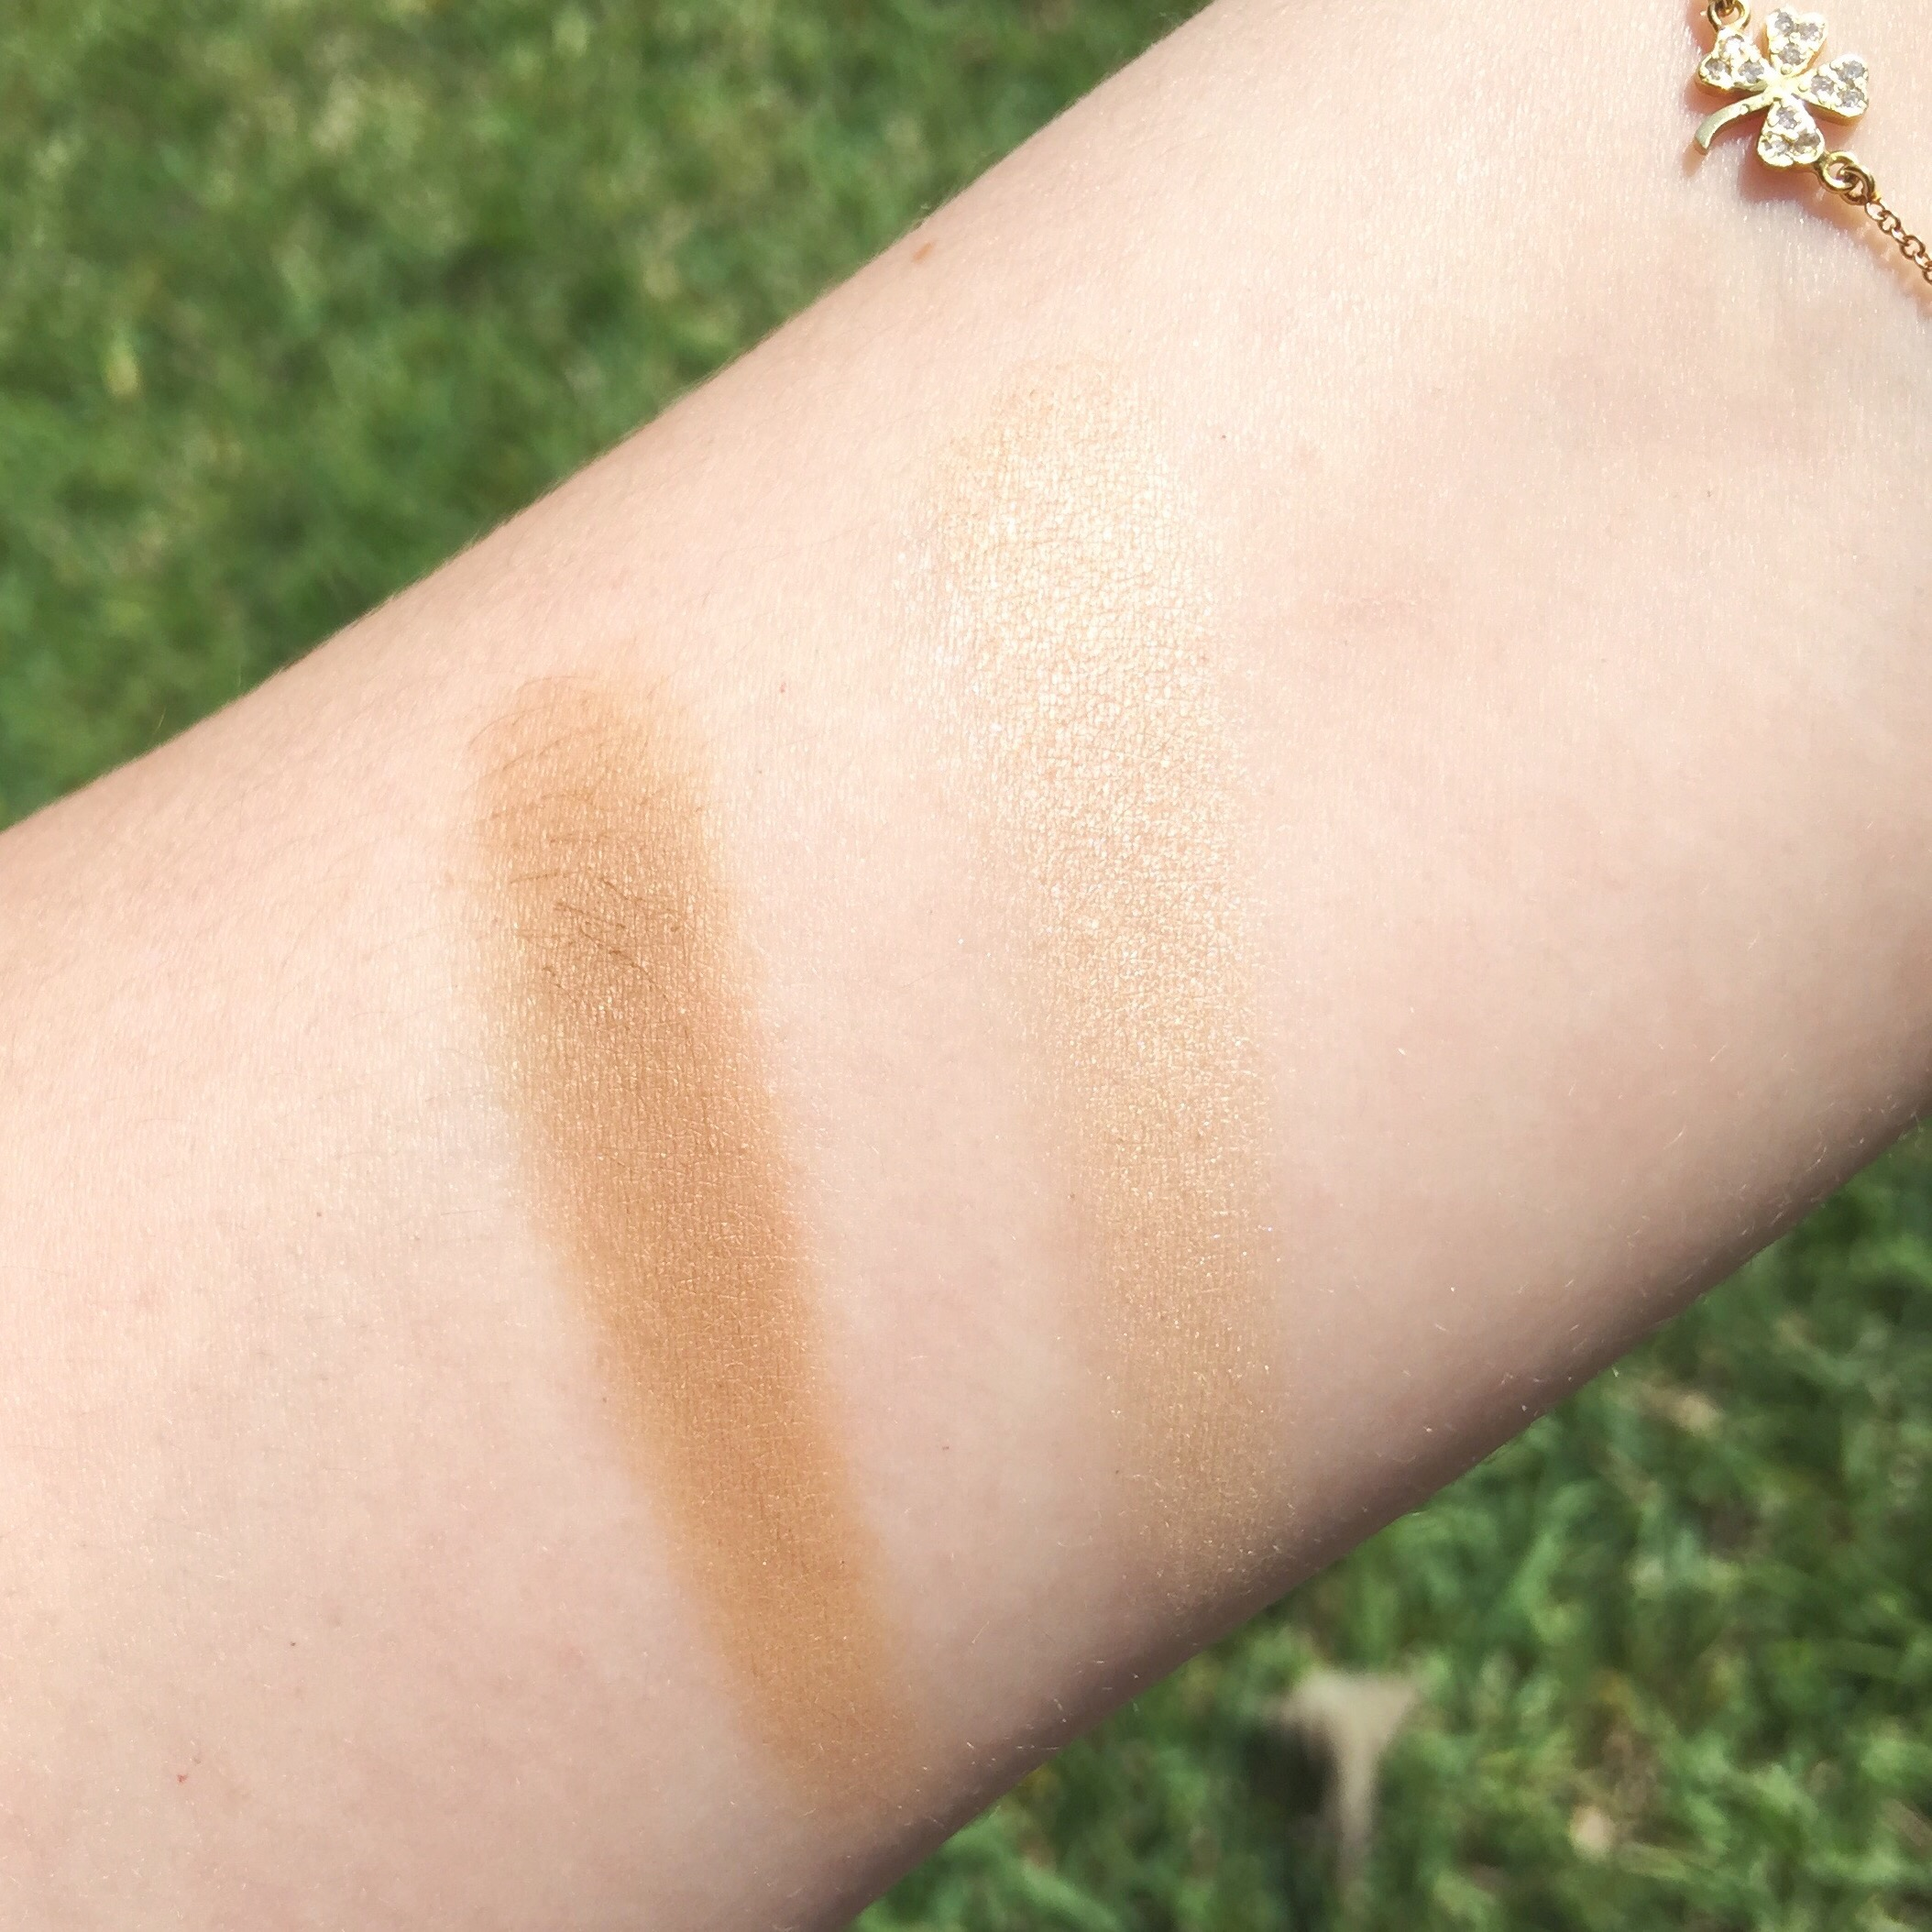 Lily lolo sculpt and glow contour duo swatch